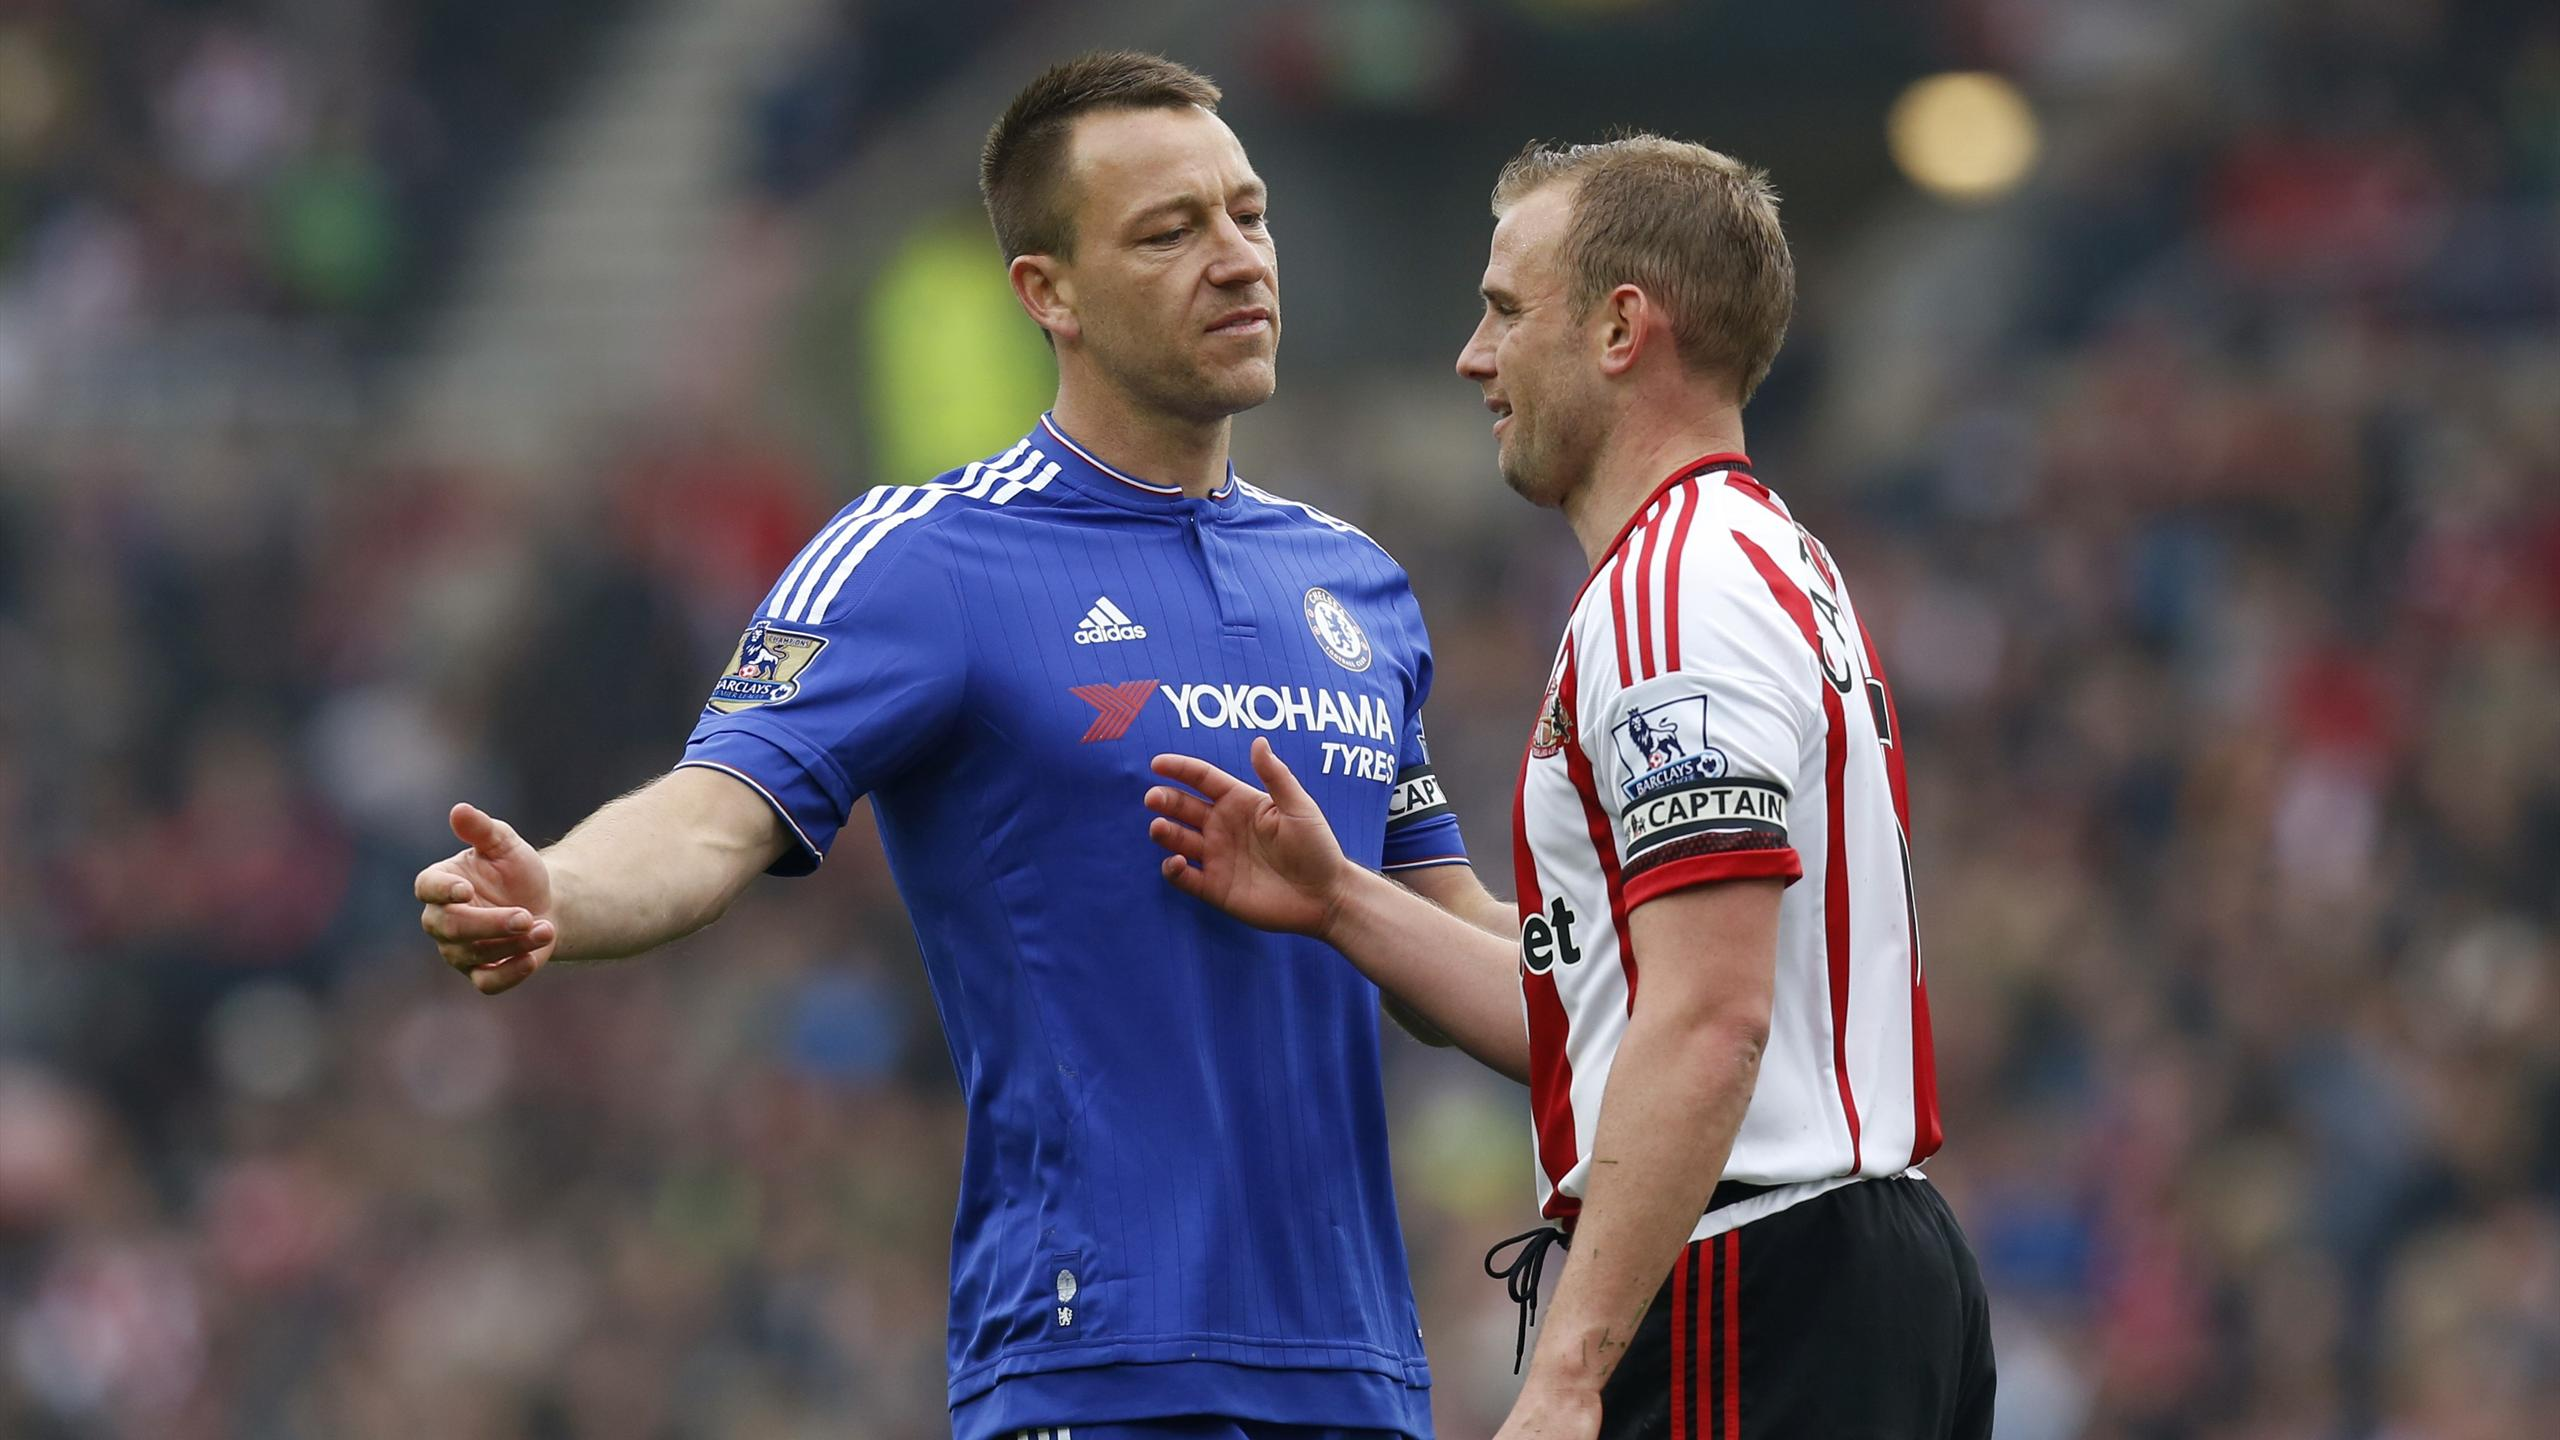 Sunderland's Lee Cattermole with Chelsea's John Terry